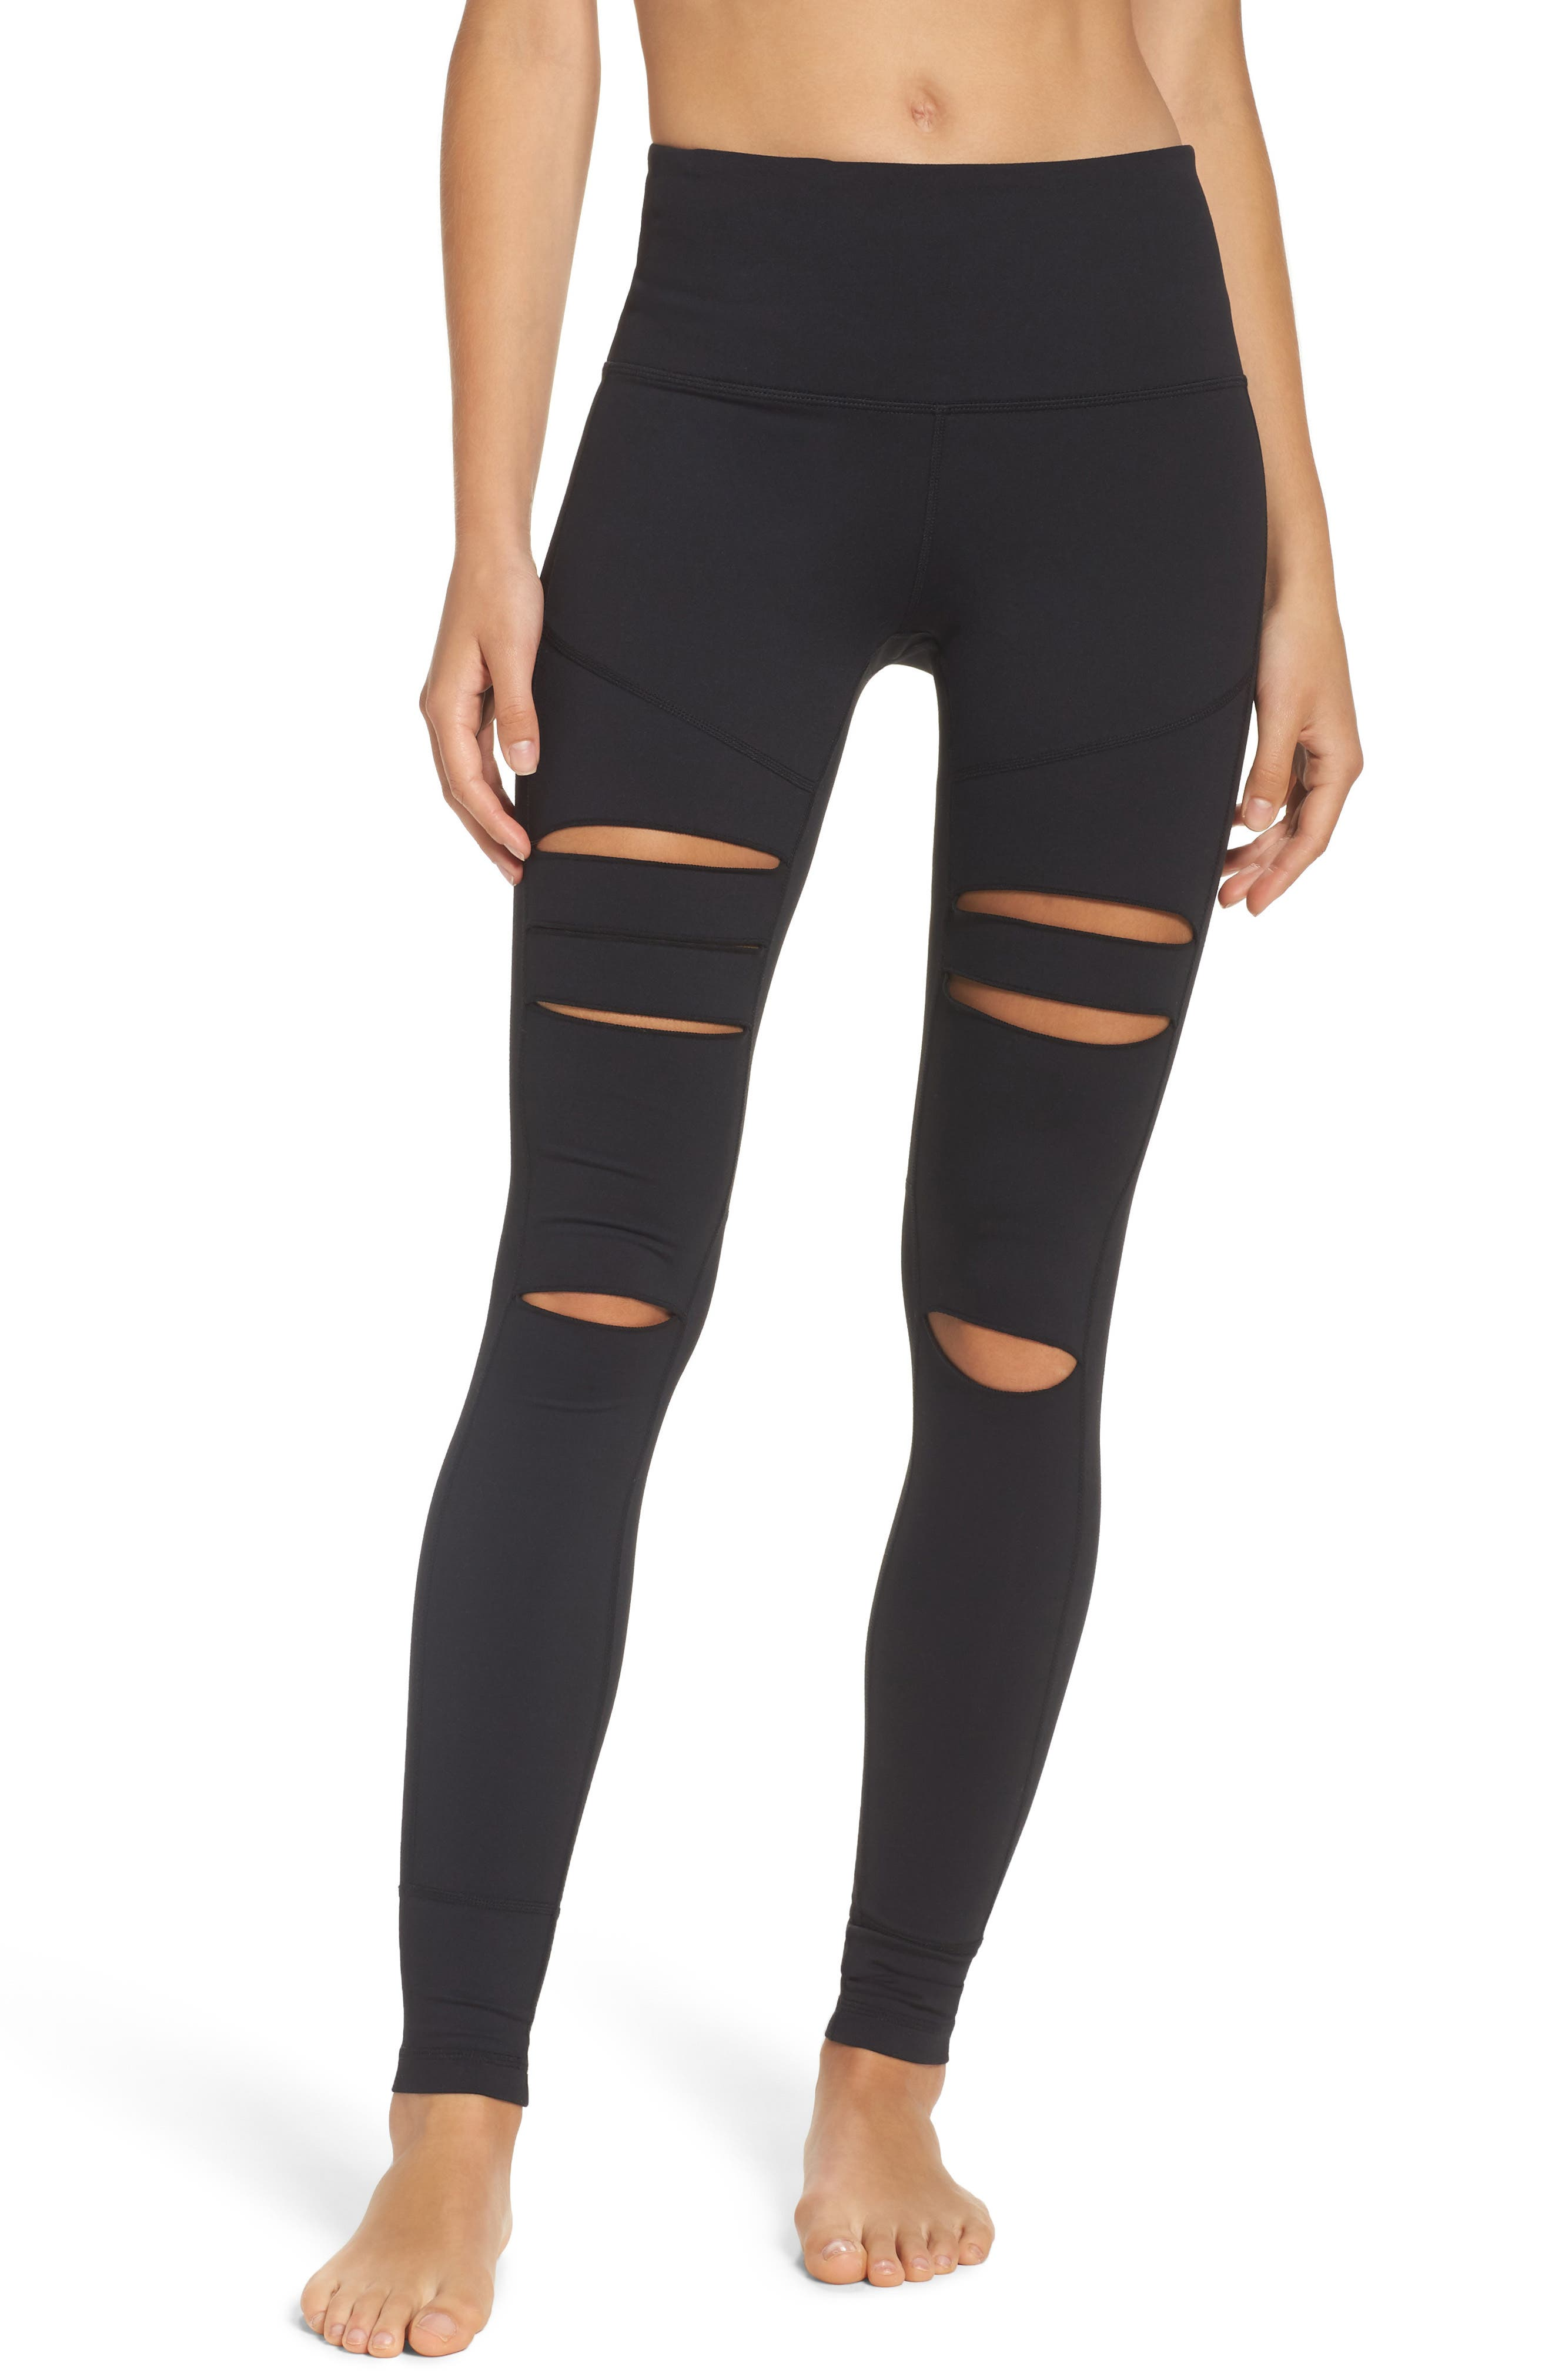 Main Image - Zella Cece High Waist Open Knee Leggings